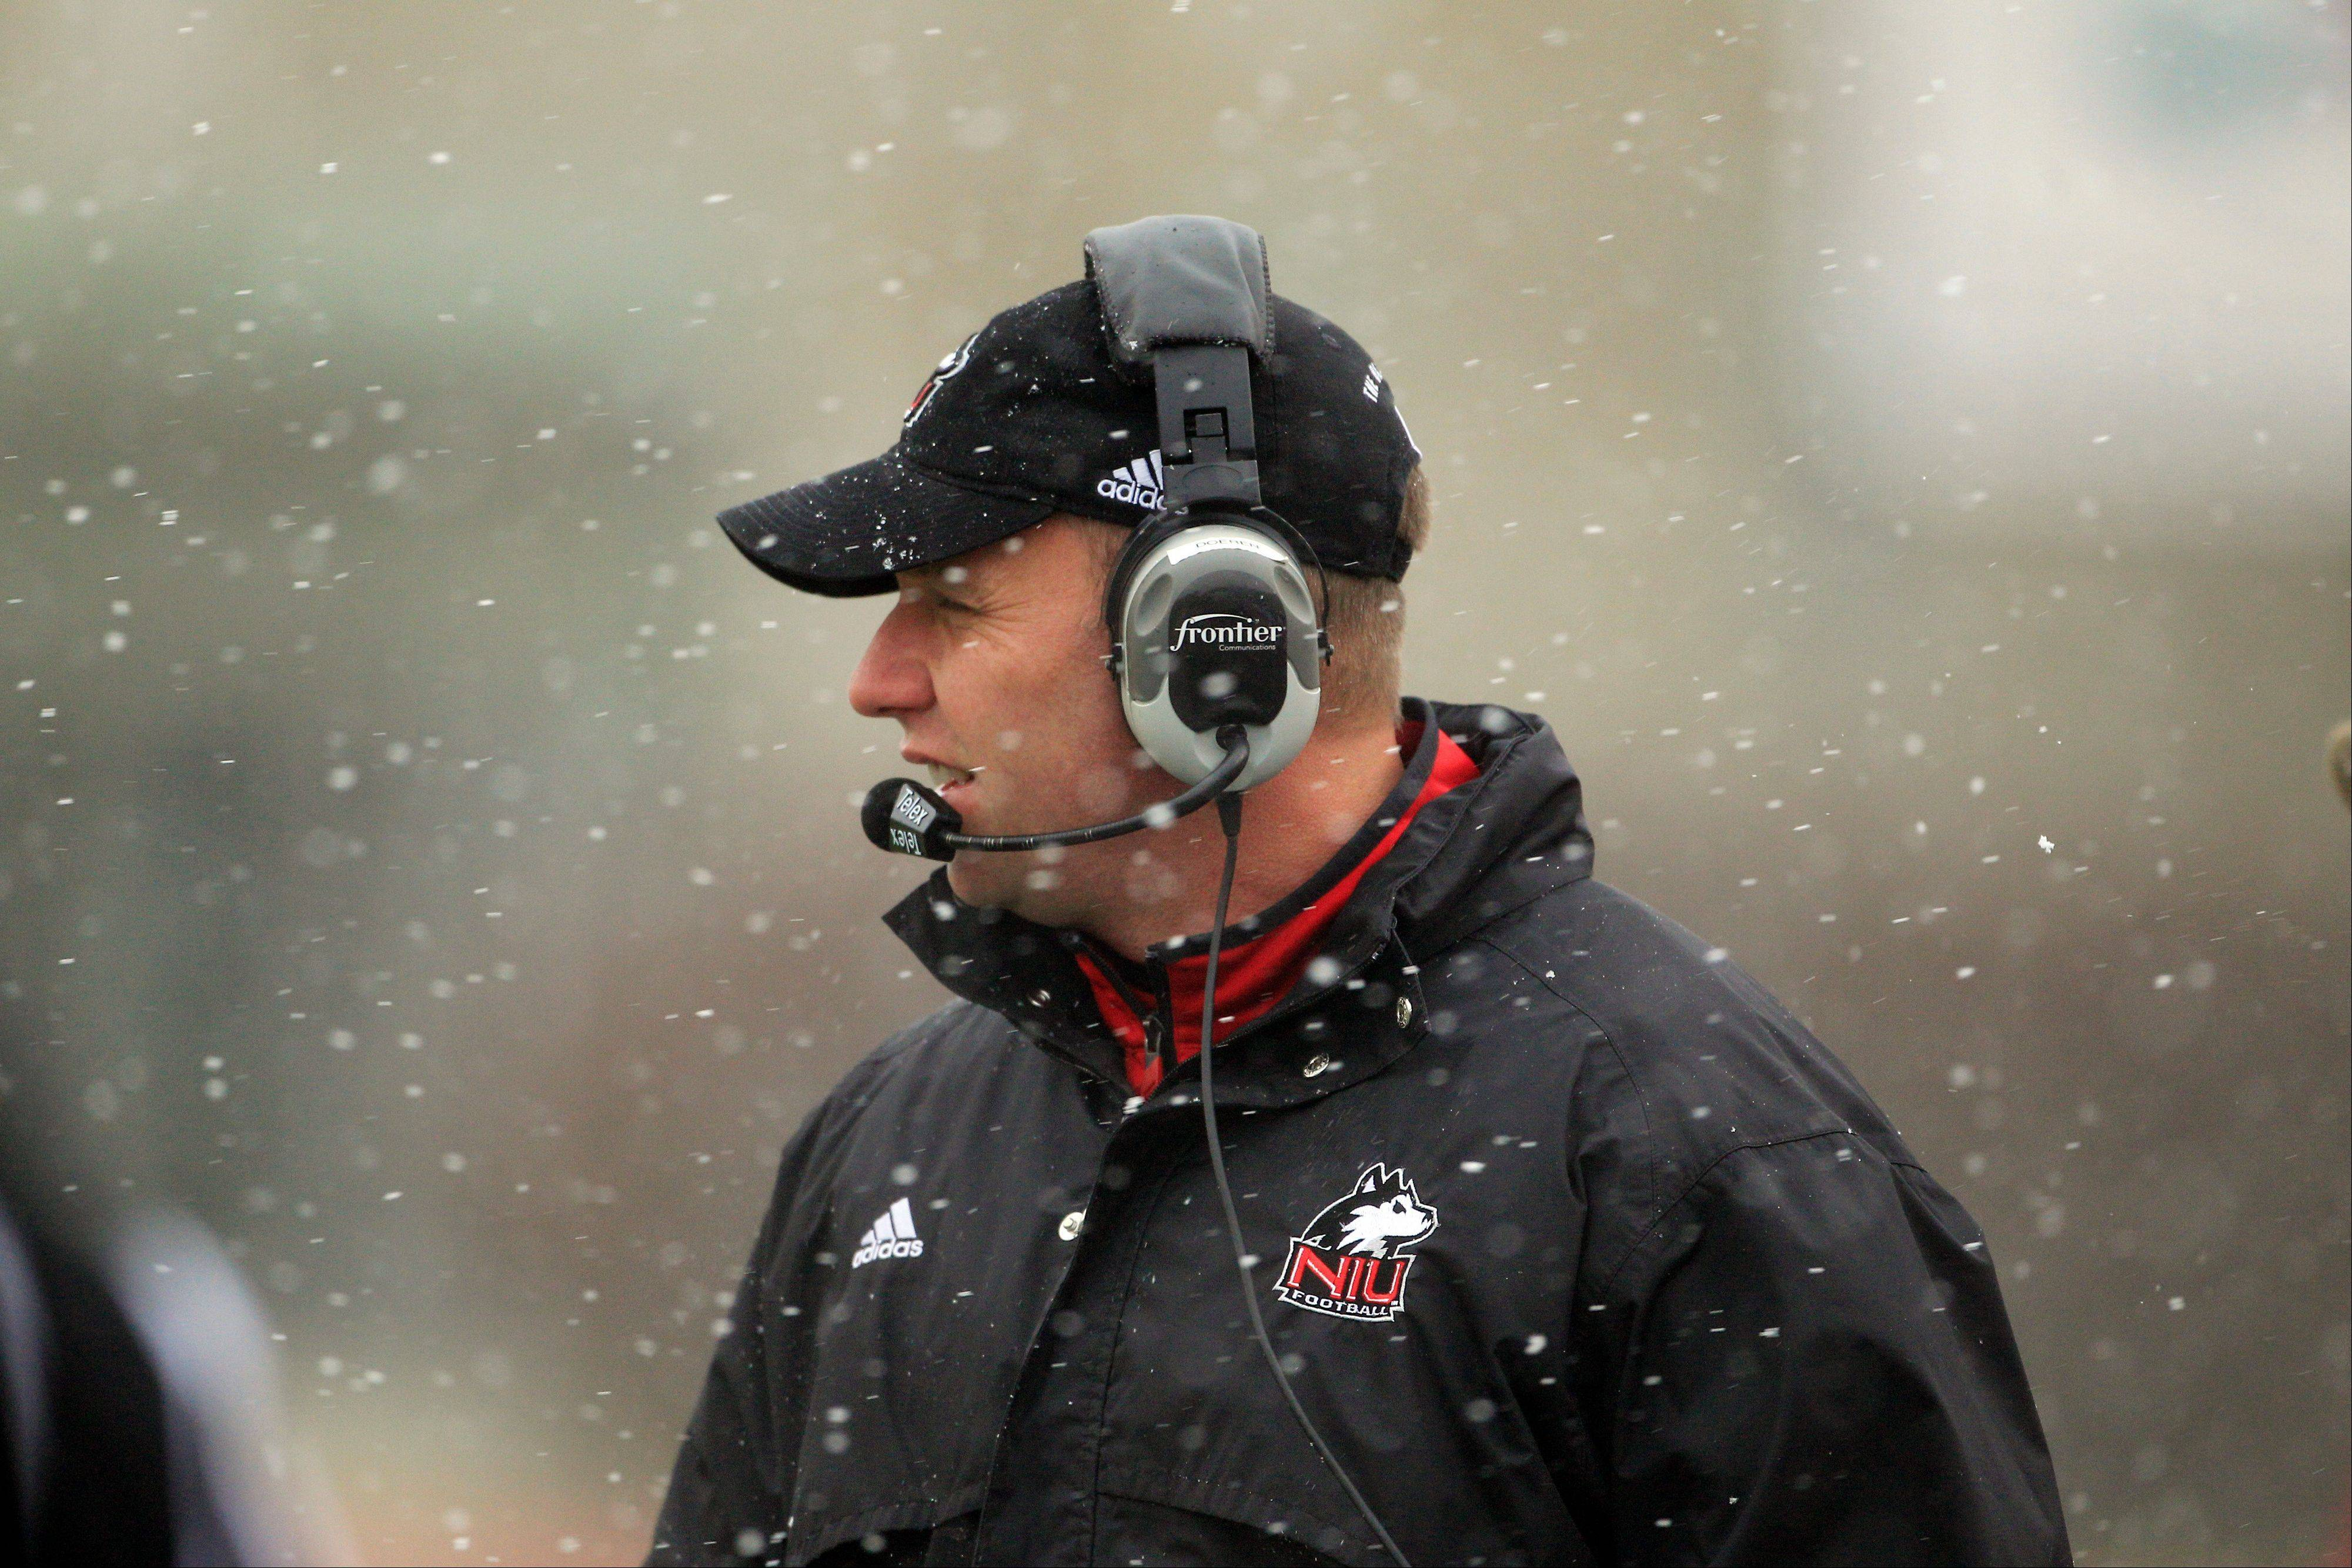 Northern Illinois head coach Dave Doeren watches from the sidelines during the second quarter of an NCAA college football game against Eastern Michigan in Ypsilanti, Mich., Friday, Nov. 23, 2012. (AP Photo/Carlos Osorio)